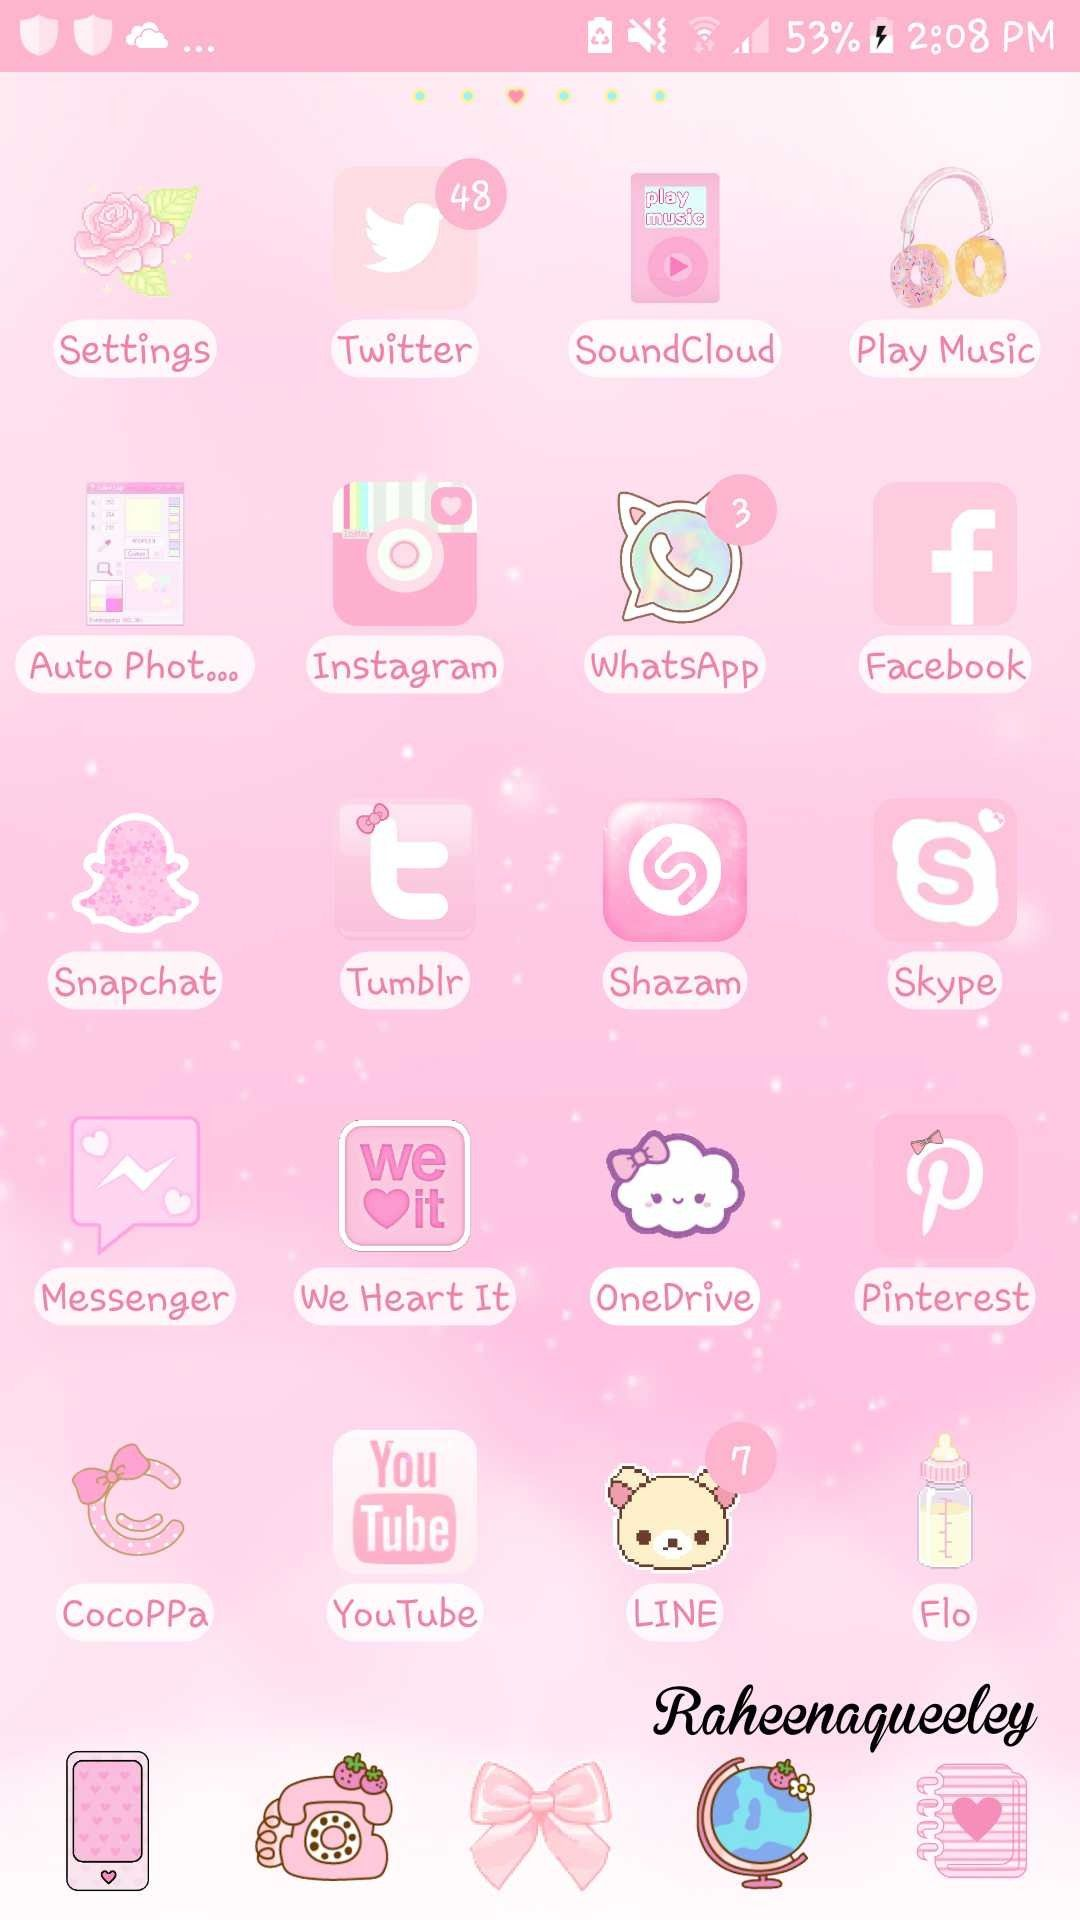 Pin by Raheena Queeley🐱 on Diy wallpapers by me (pinky) in